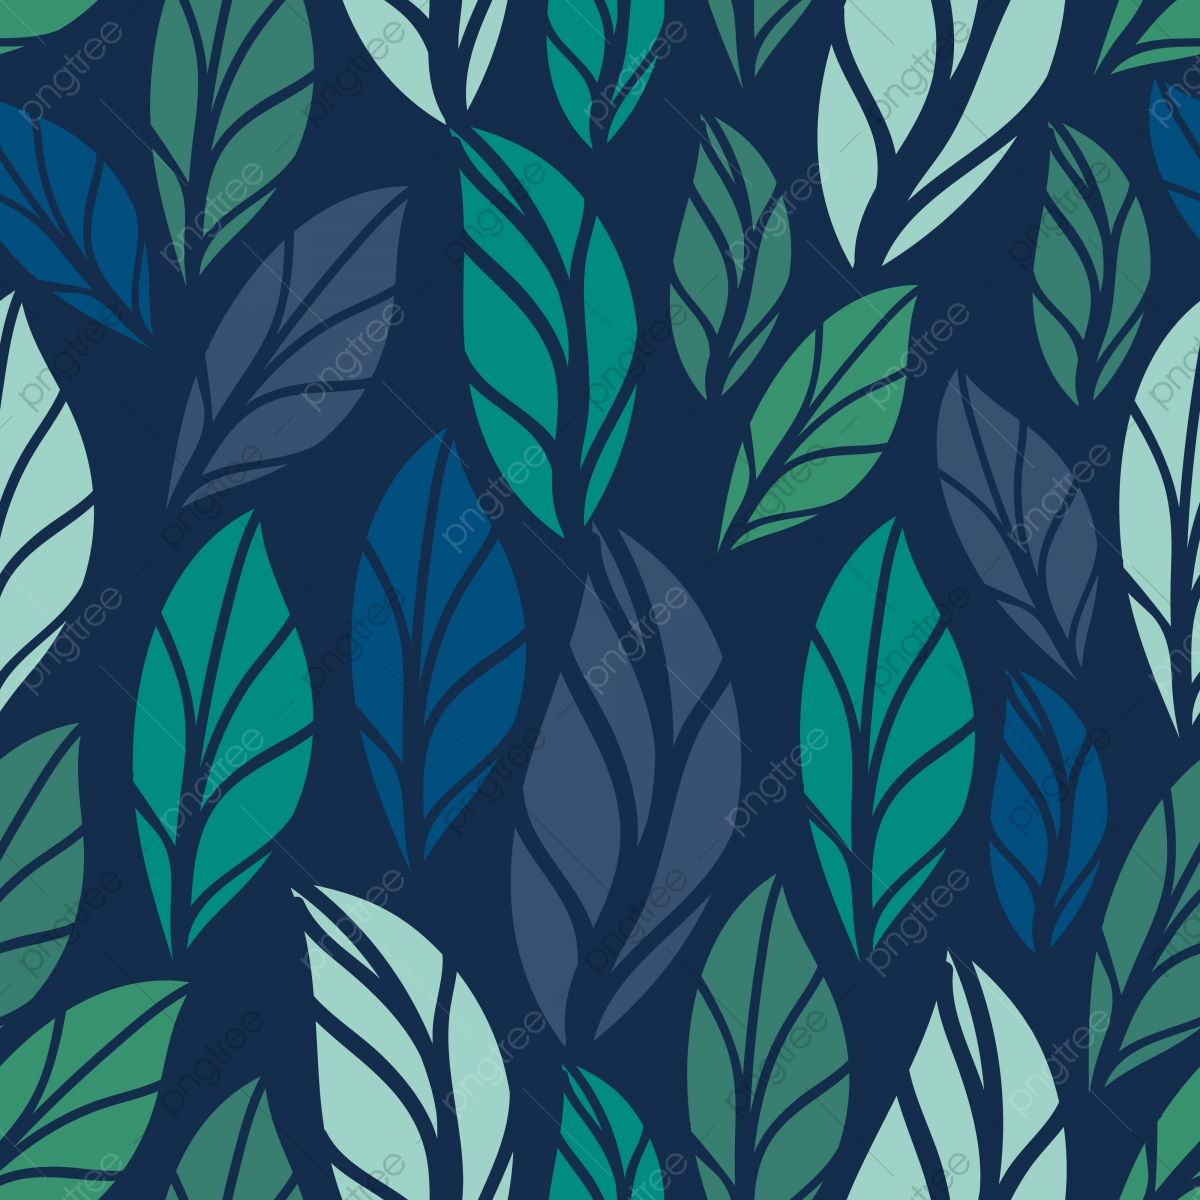 Floral Seamless Pattern Foliage Seamless Pattern Design With